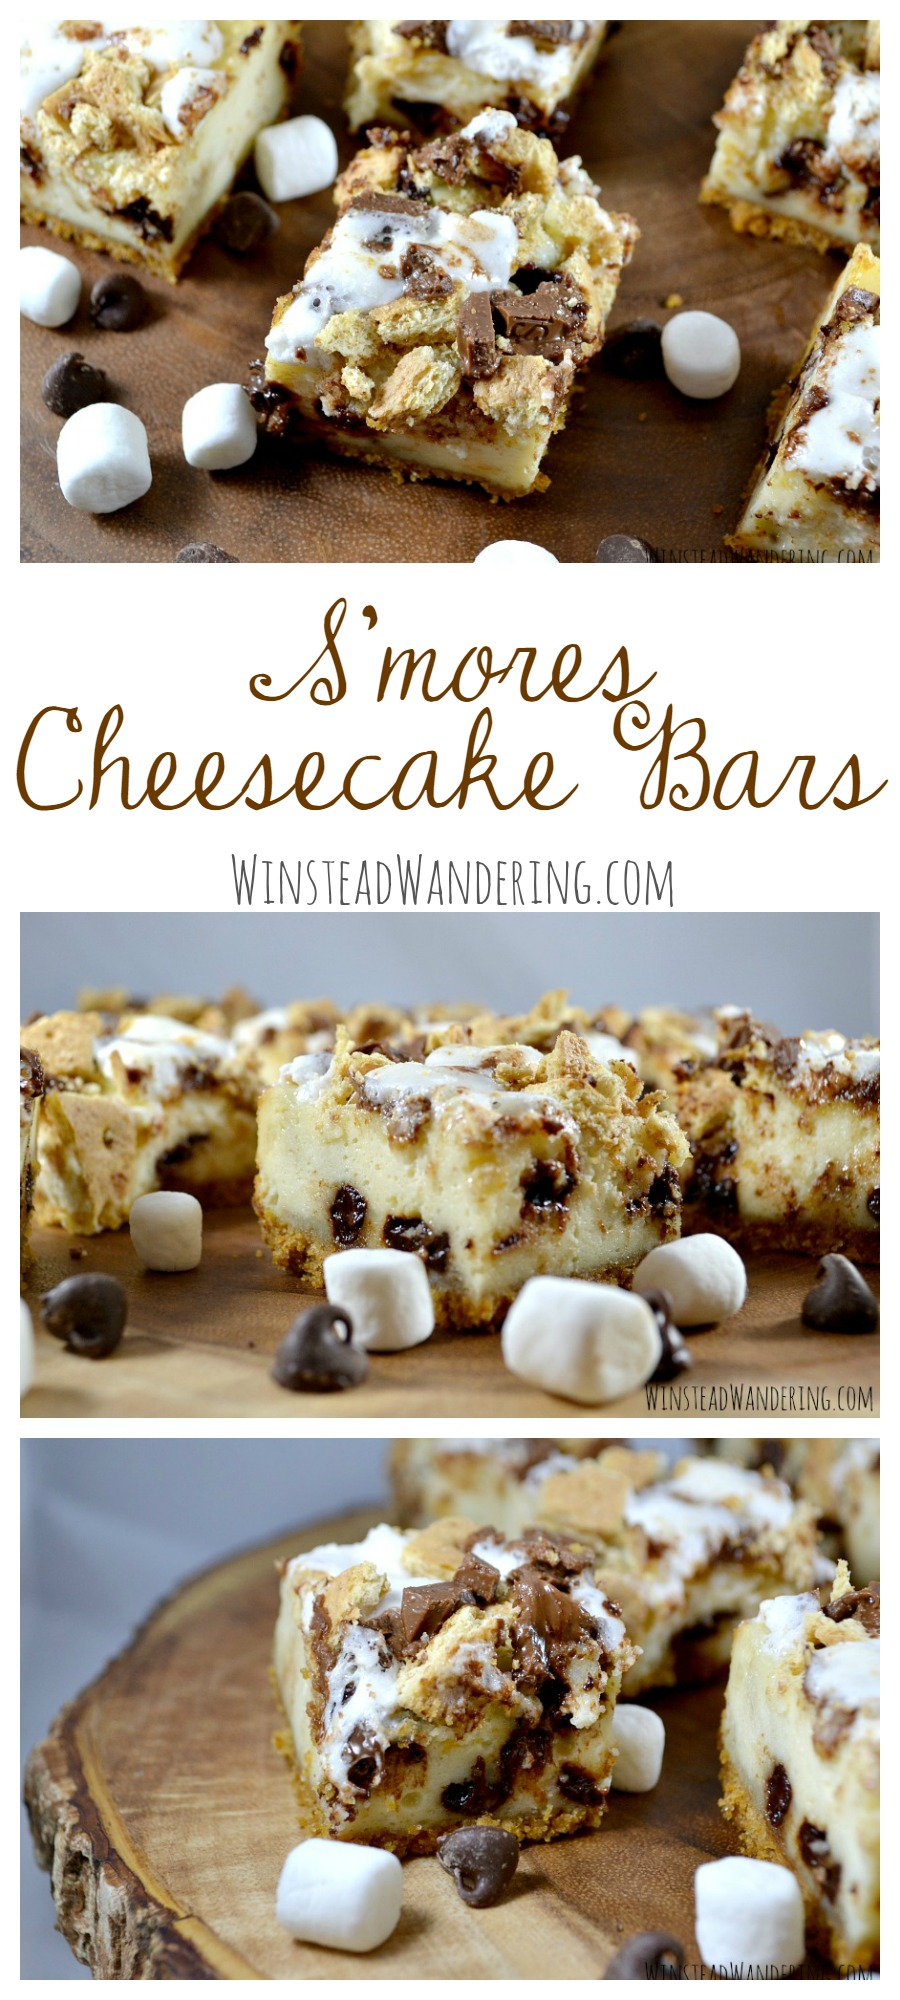 What happens when you combine the classic flavors of s'mores with rich cheesecake? You get these creamy, dreamy S'mores Cheesecake Bars.